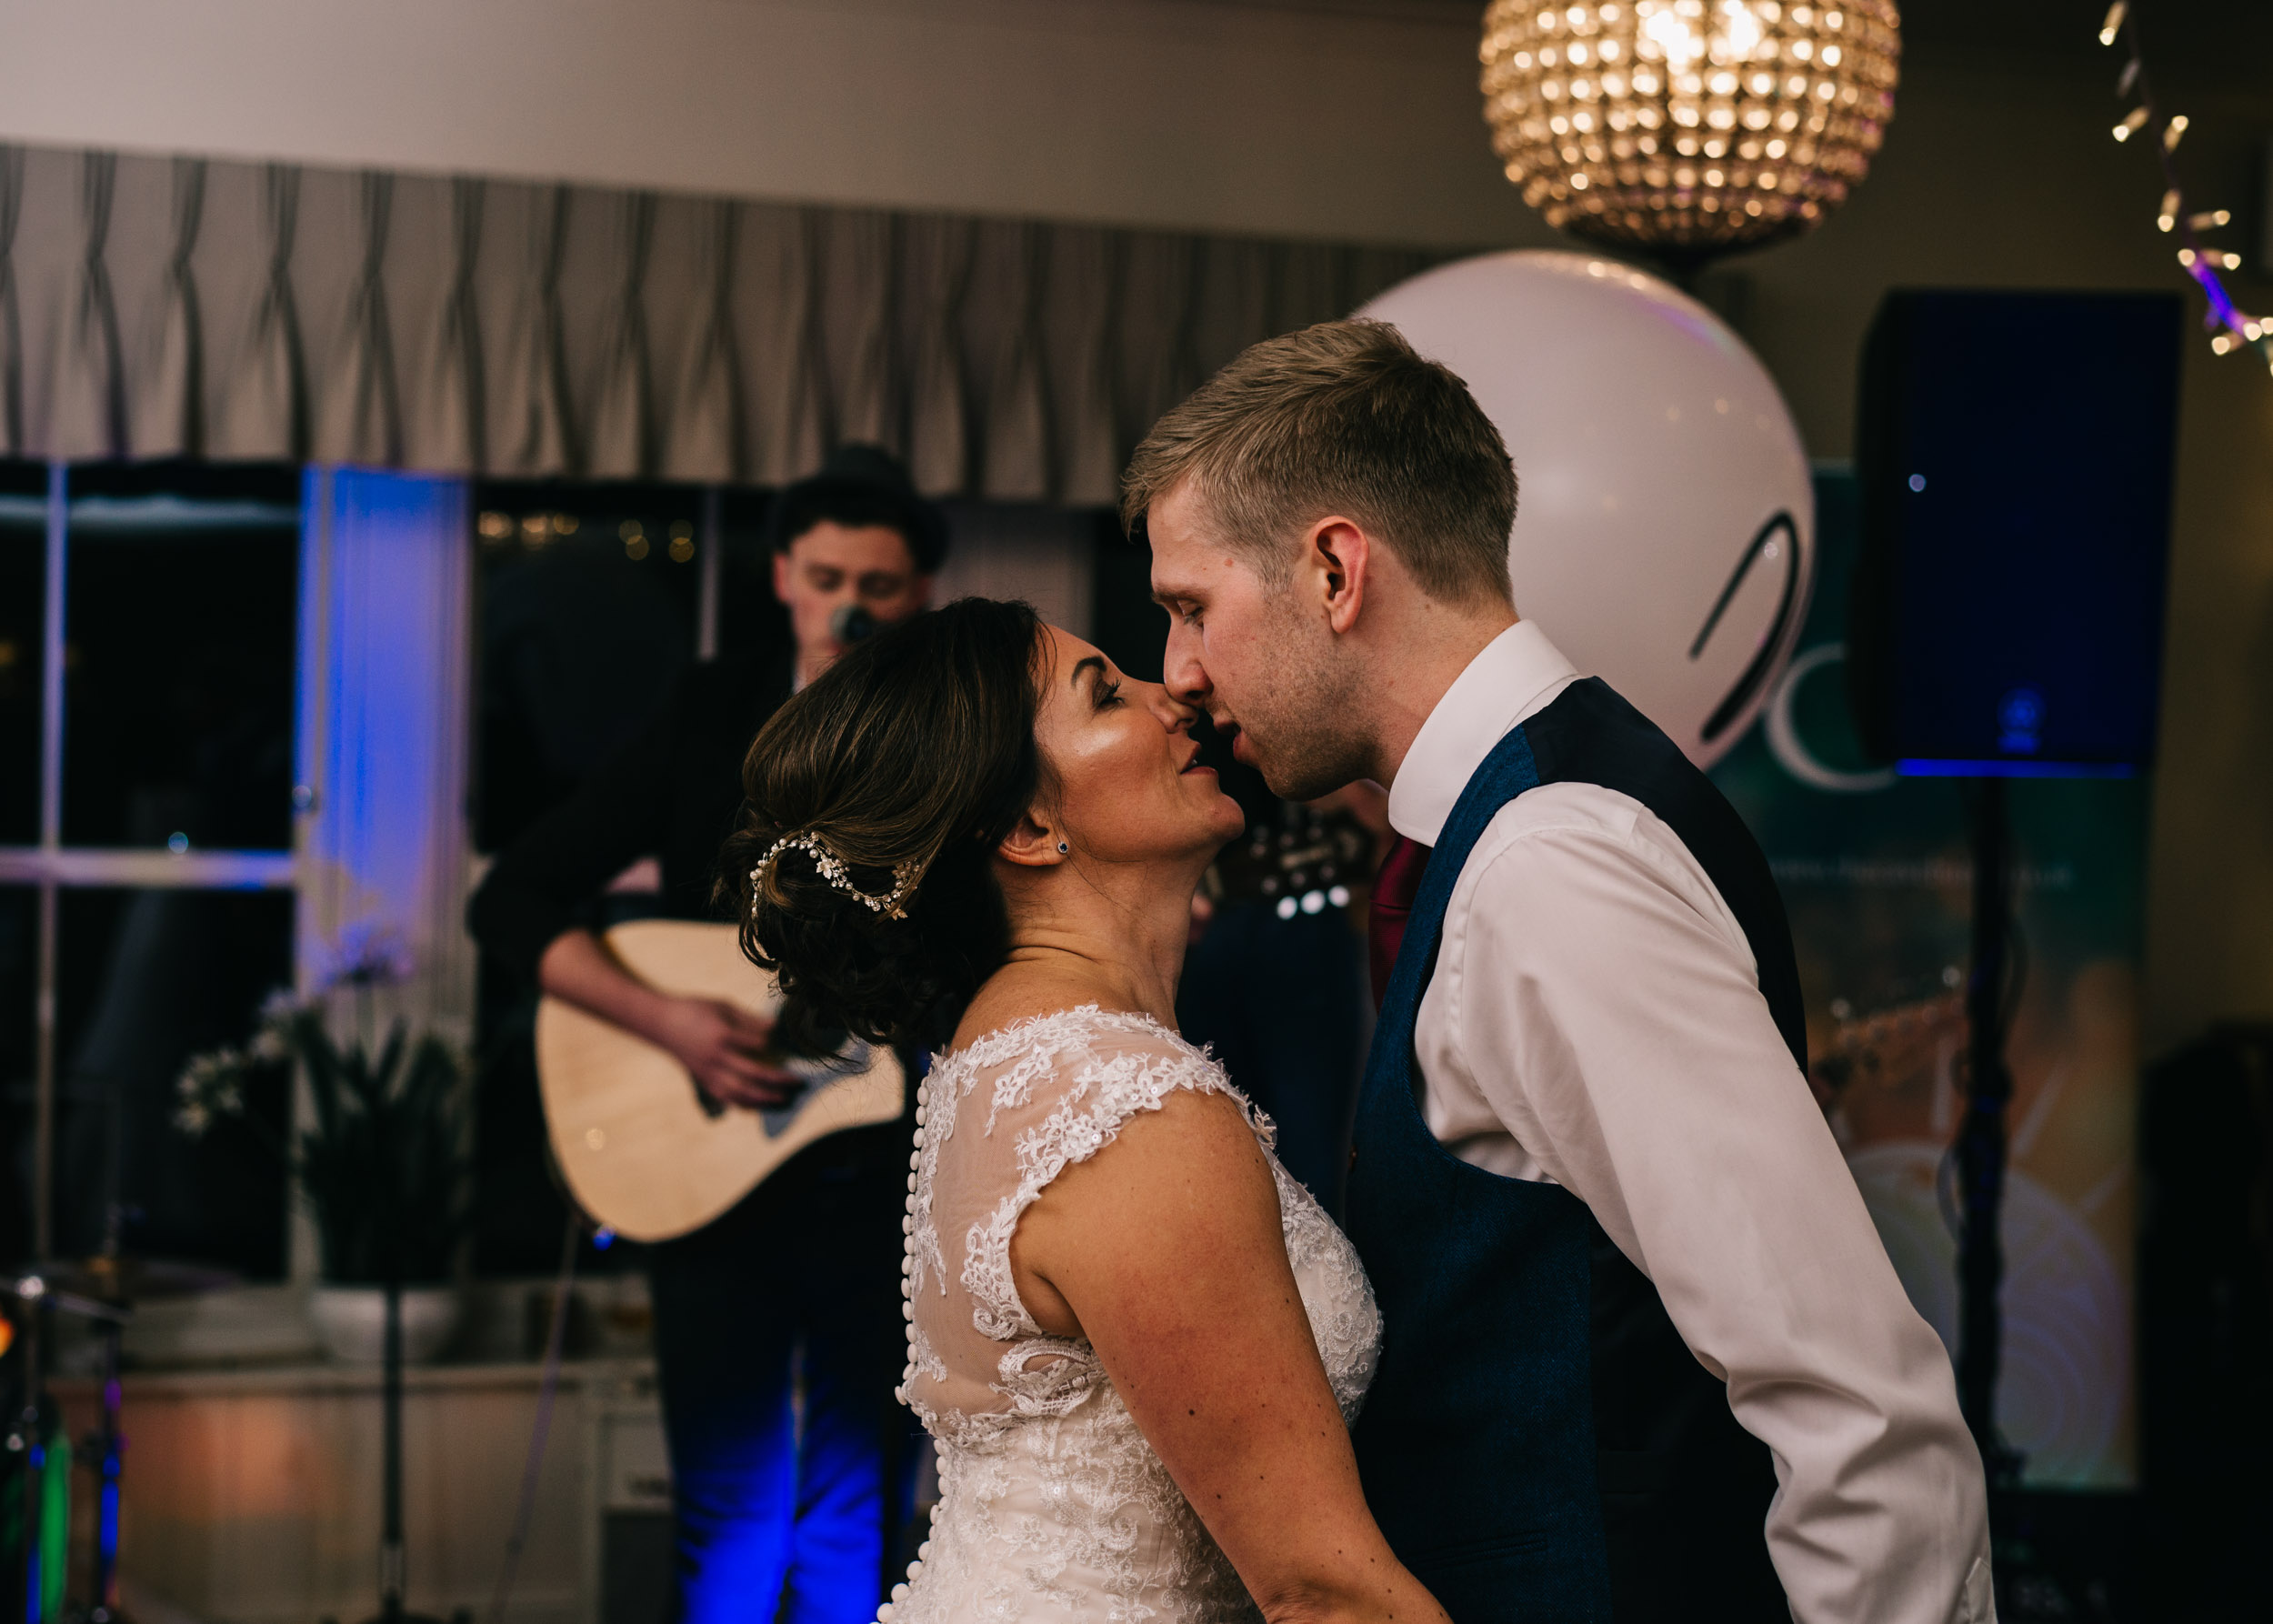 Shireburn Arms Wedding Hurst Green, Ribble Valley, Lancashire48